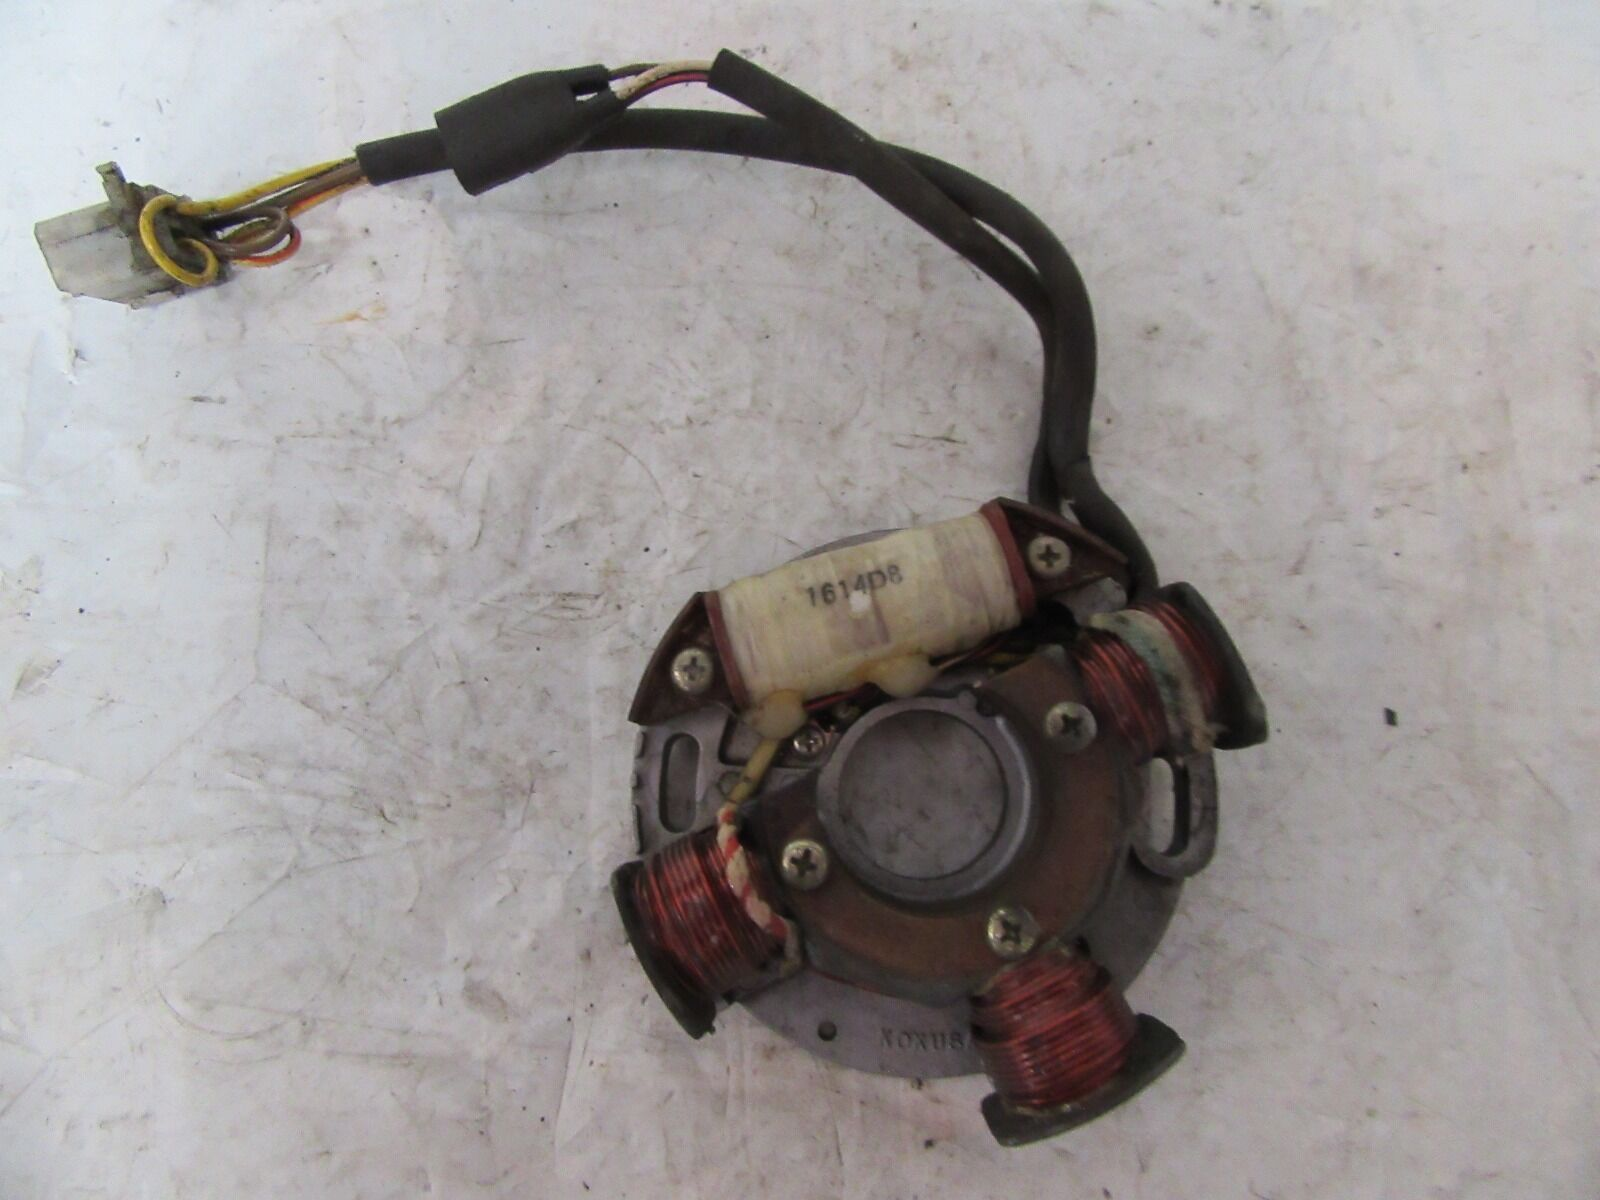 95' Polaris 340 Indy Lite Stator Item